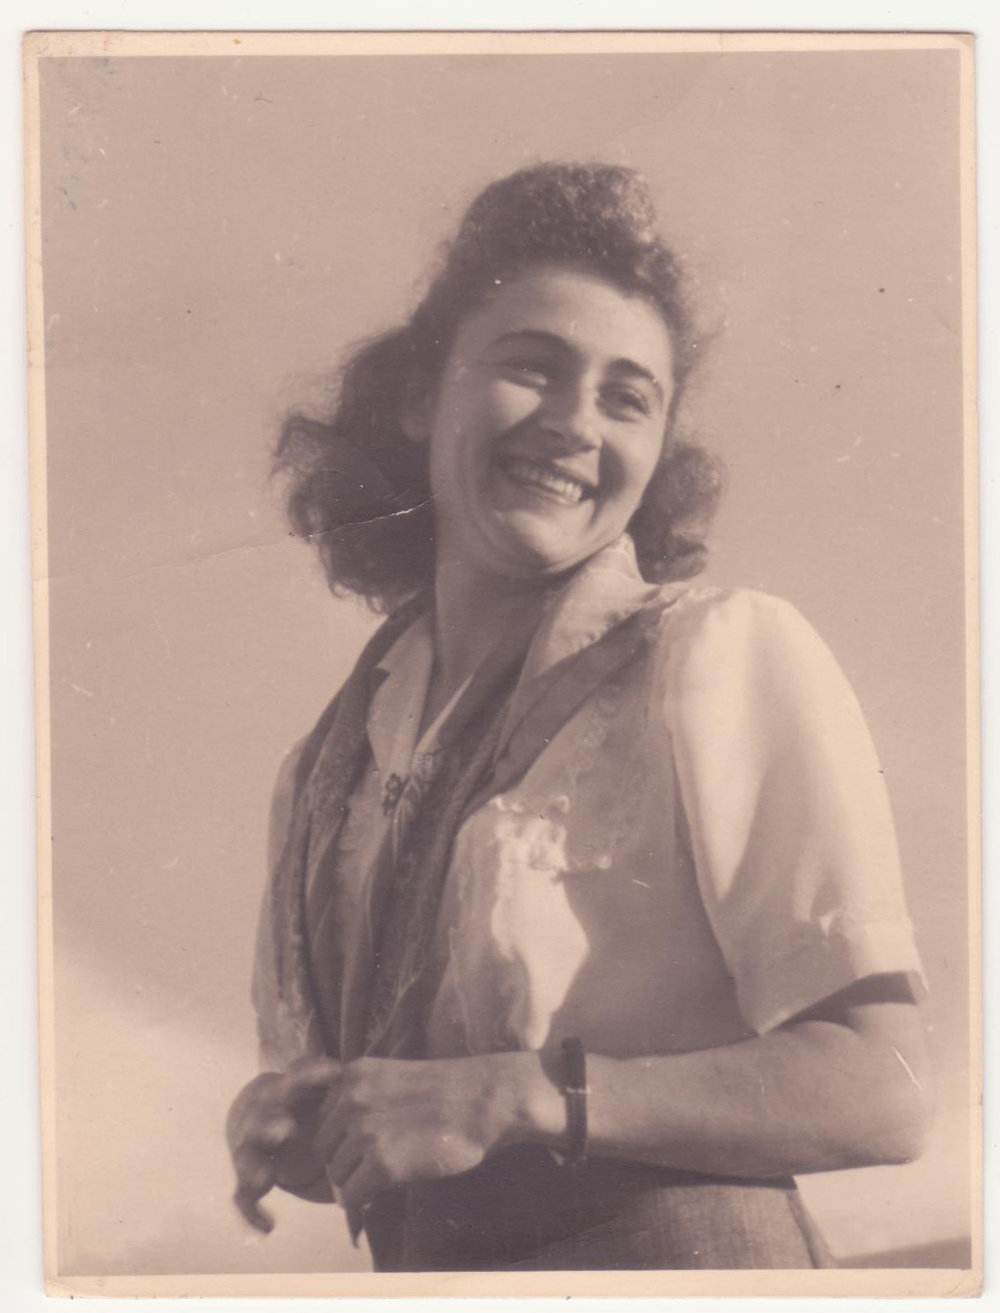 Hilda Dormont born in 1926, pictured here in Tel Aviv.